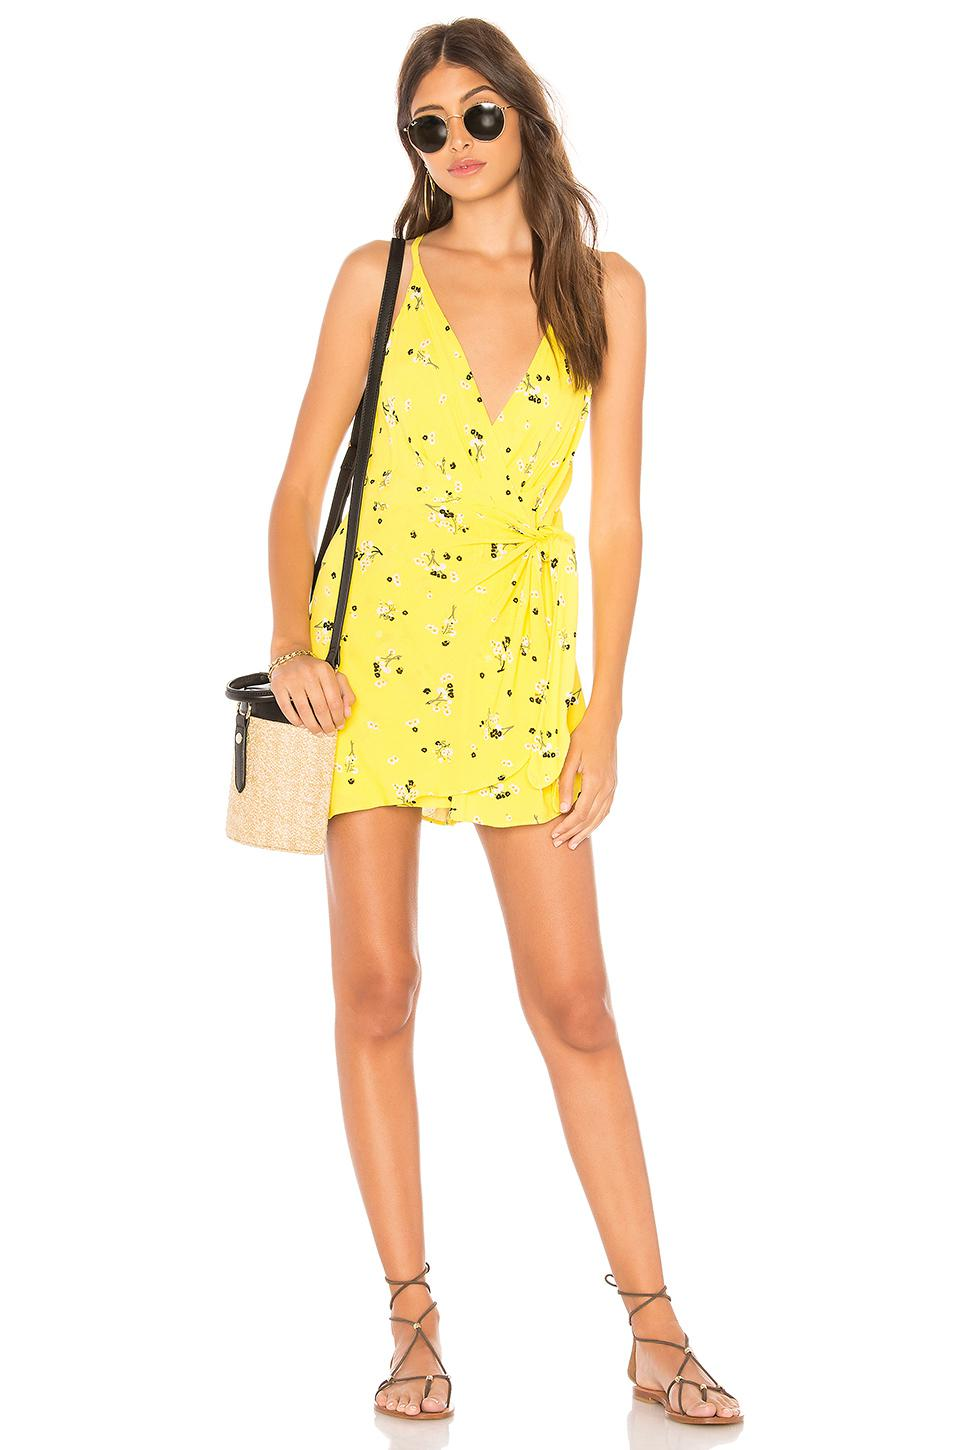 Outlet Affordable Tango At Night Printed Wrap Slip Dress - Yellow Free People Buy Cheap Best Wholesale With Paypal For Sale obPRF04uNR